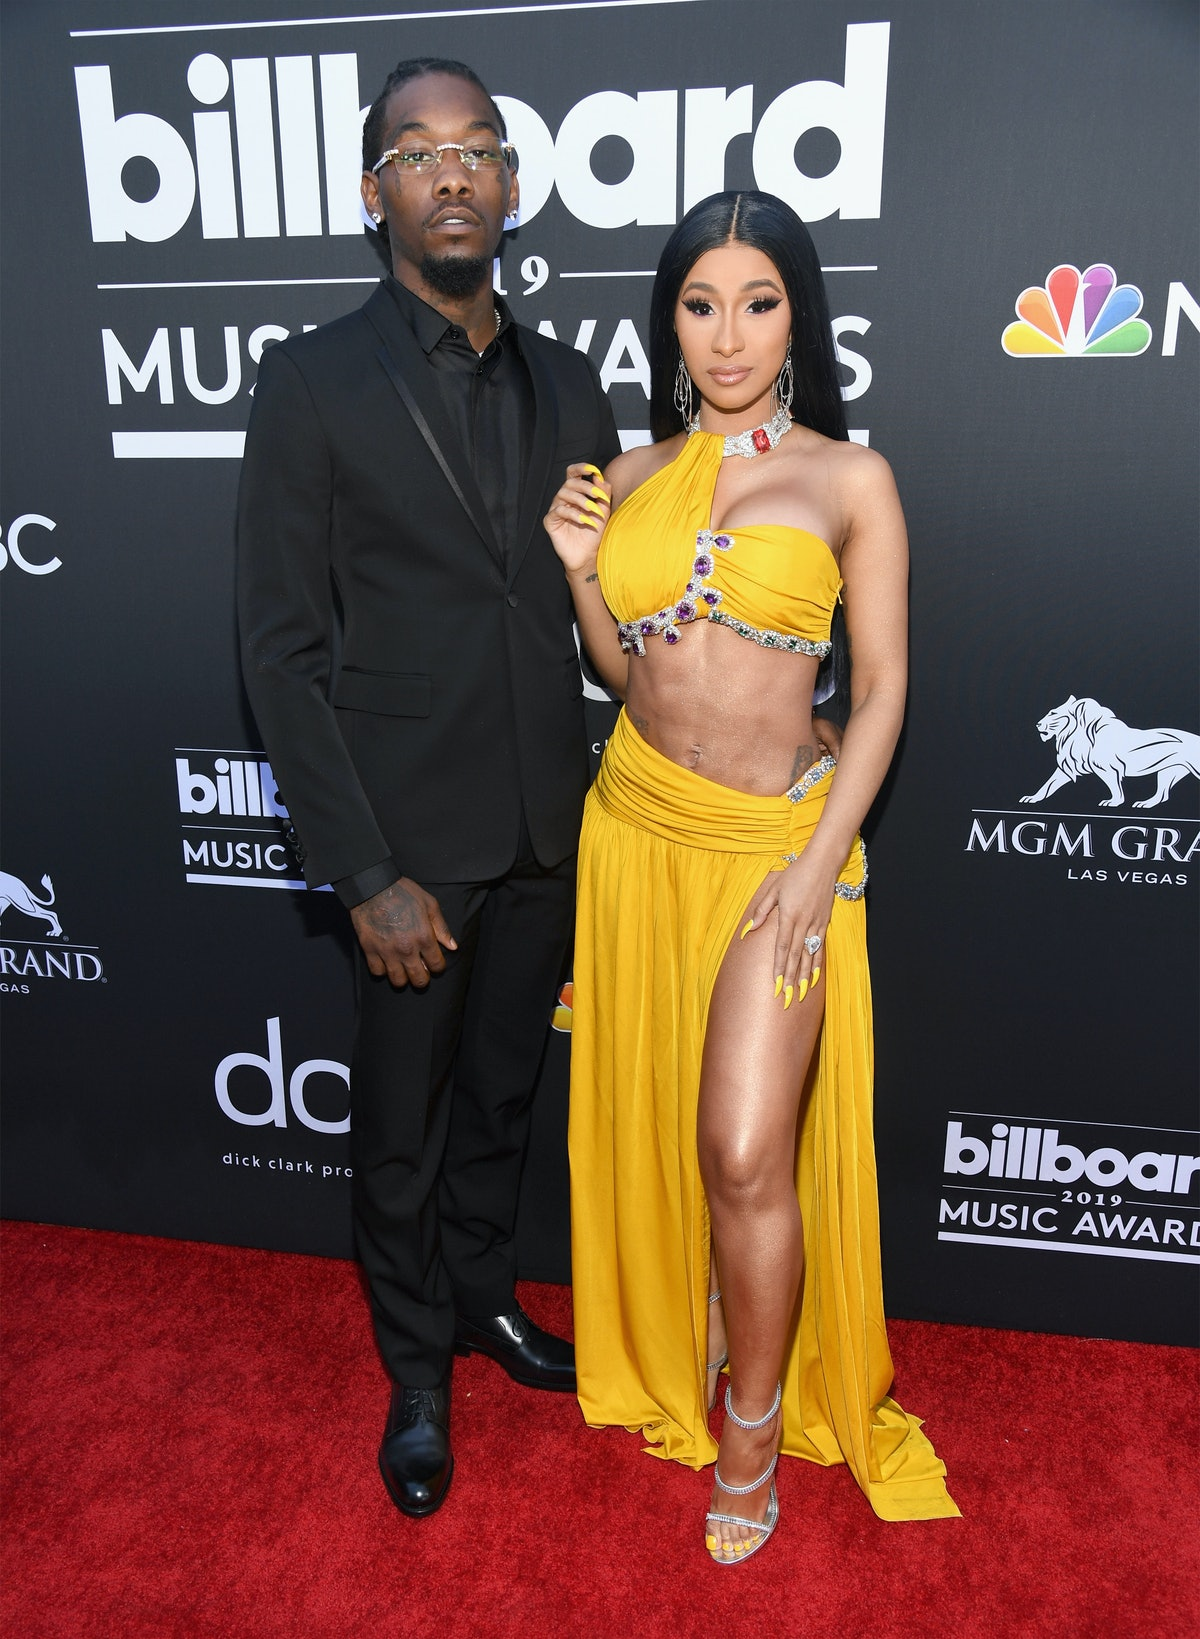 LAS VEGAS, NV - MAY 01:  (L-R) Offset of Migos and Cardi B attend the 2019 Billboard Music Awards at MGM Grand Garden Arena on May 1, 2019 in Las Vegas, Nevada.  (Photo by Kevin Mazur/Getty Images for dcp)